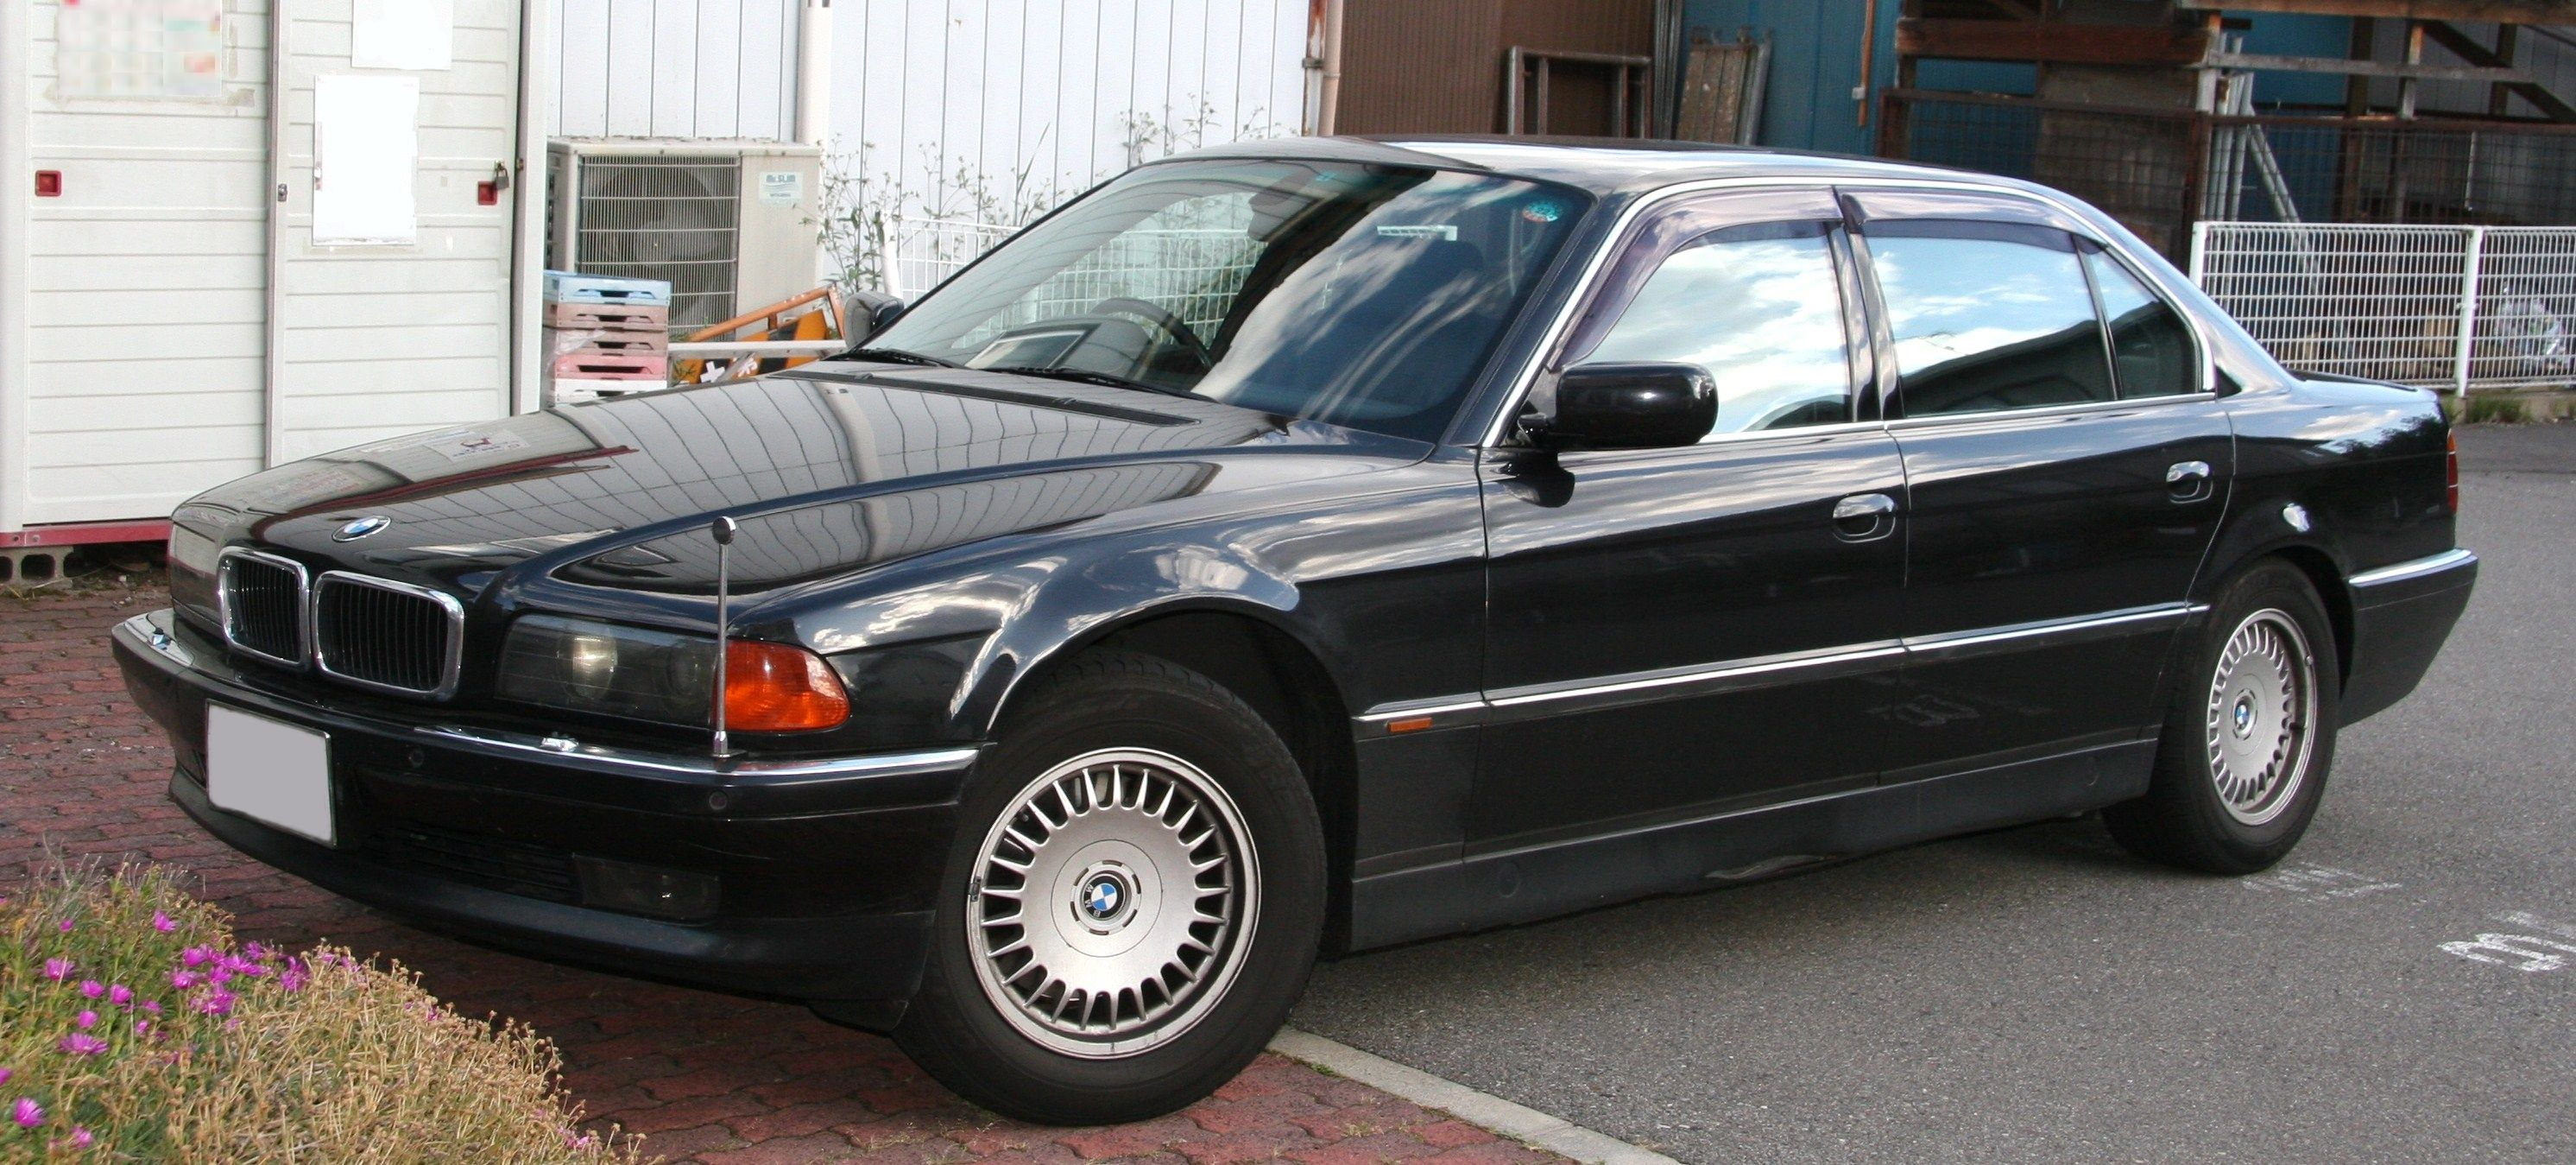 File Bmw 750il Jpg Wikimedia Commons